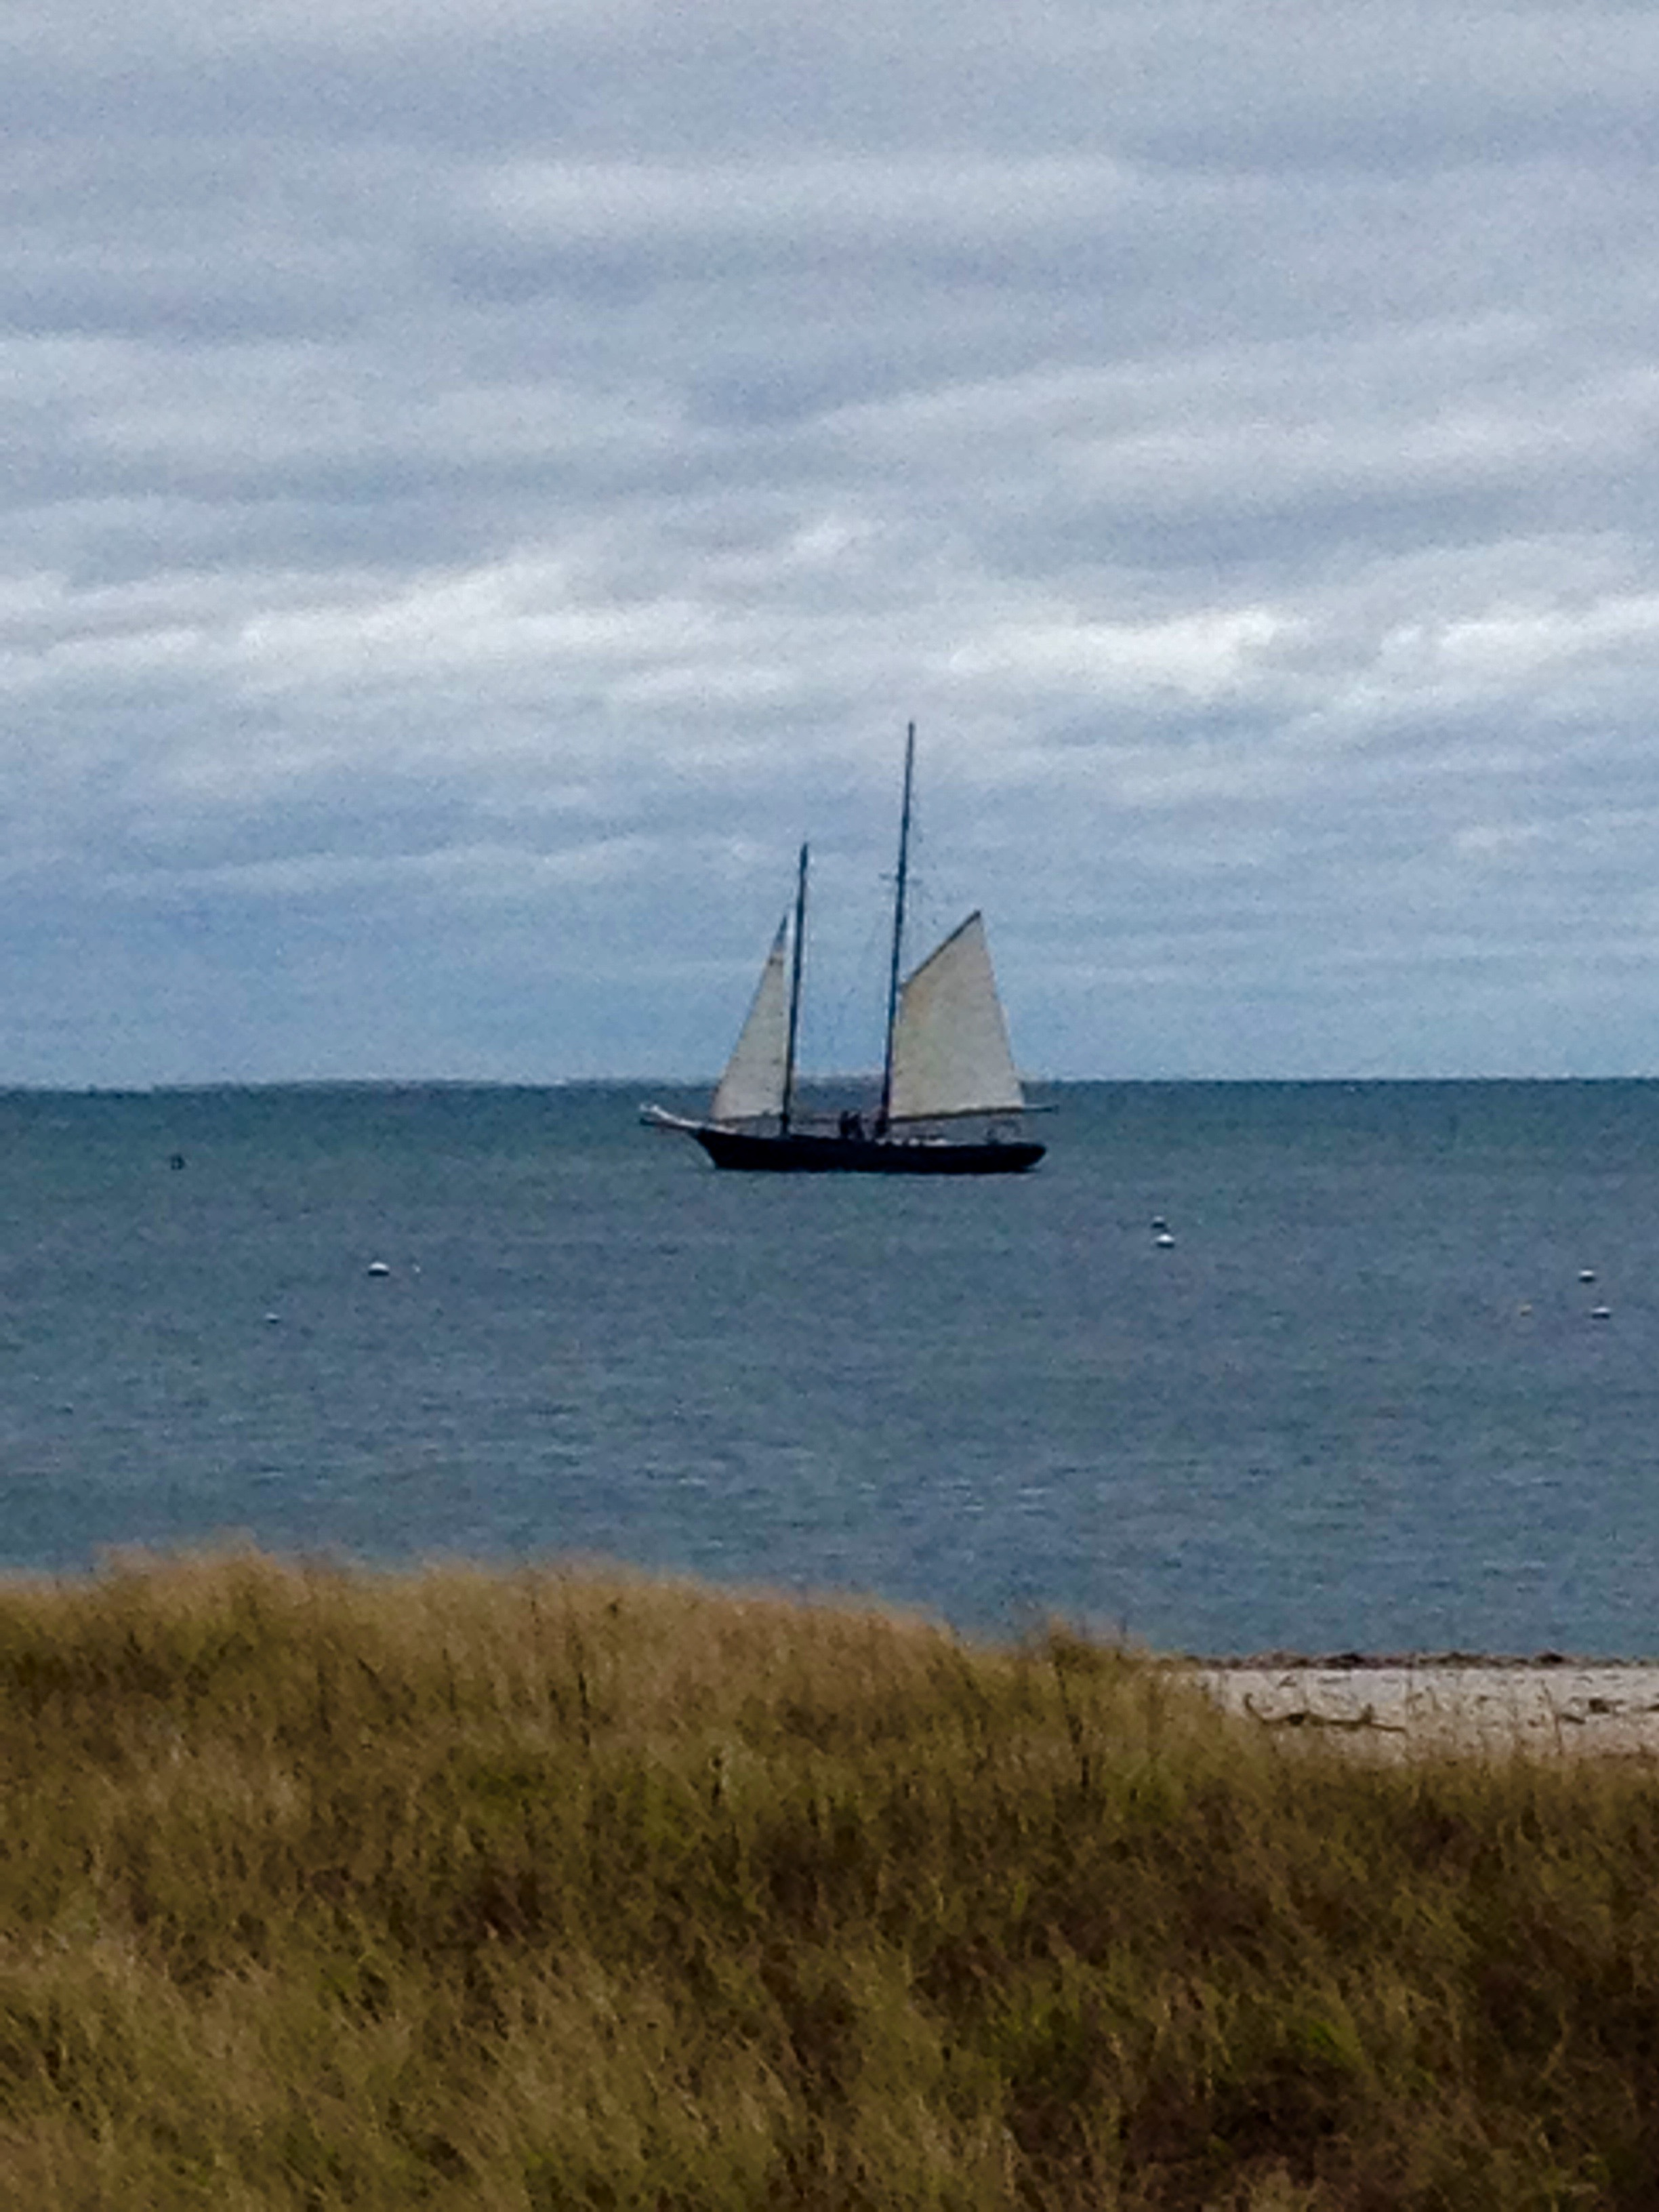 schooner tyrone at sea_unbounded adventures.jpg